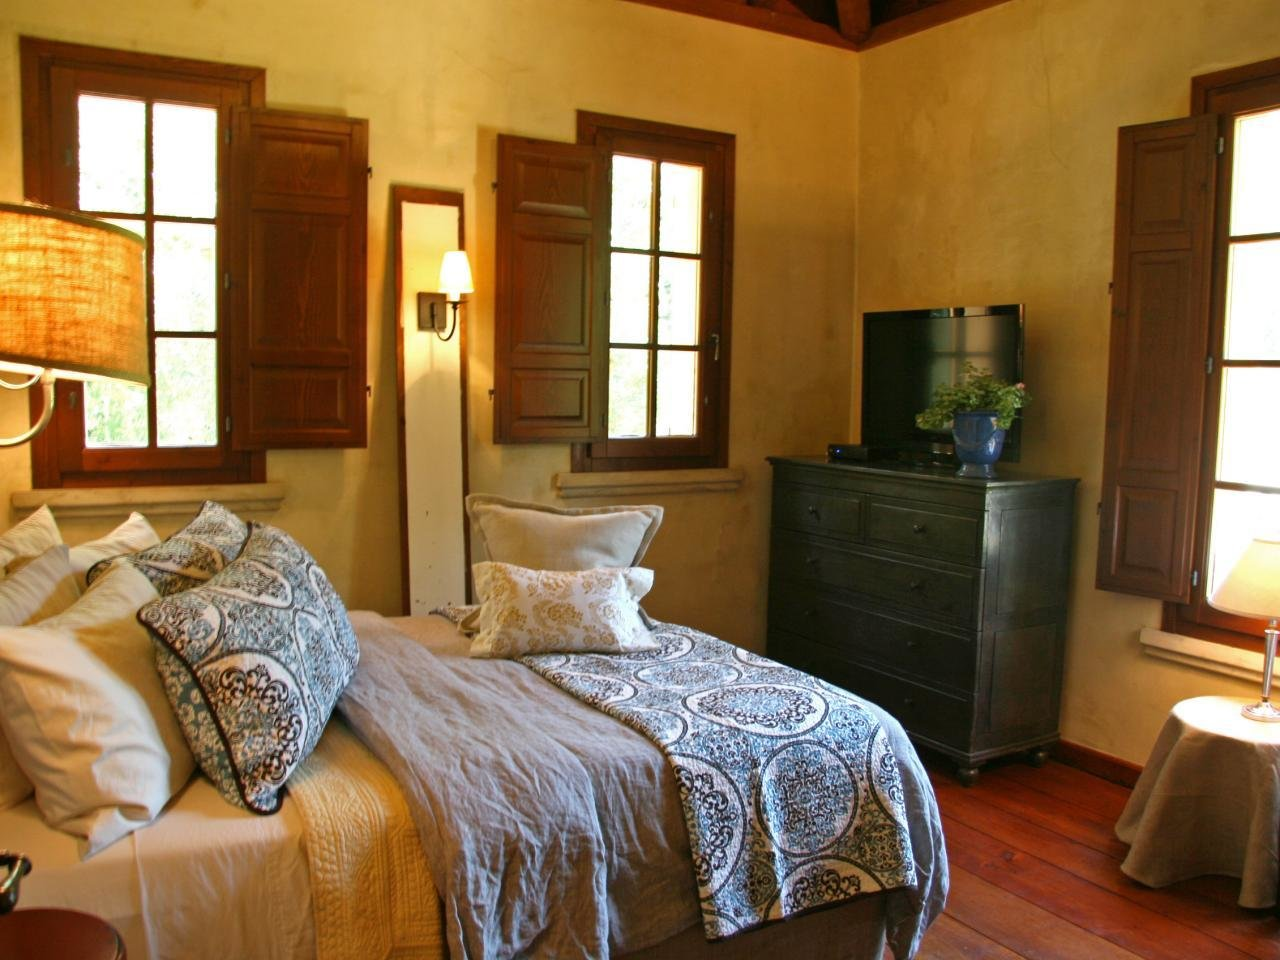 Best Rustic Western Bedroom With Wooden Shutters Hgtv With Pictures